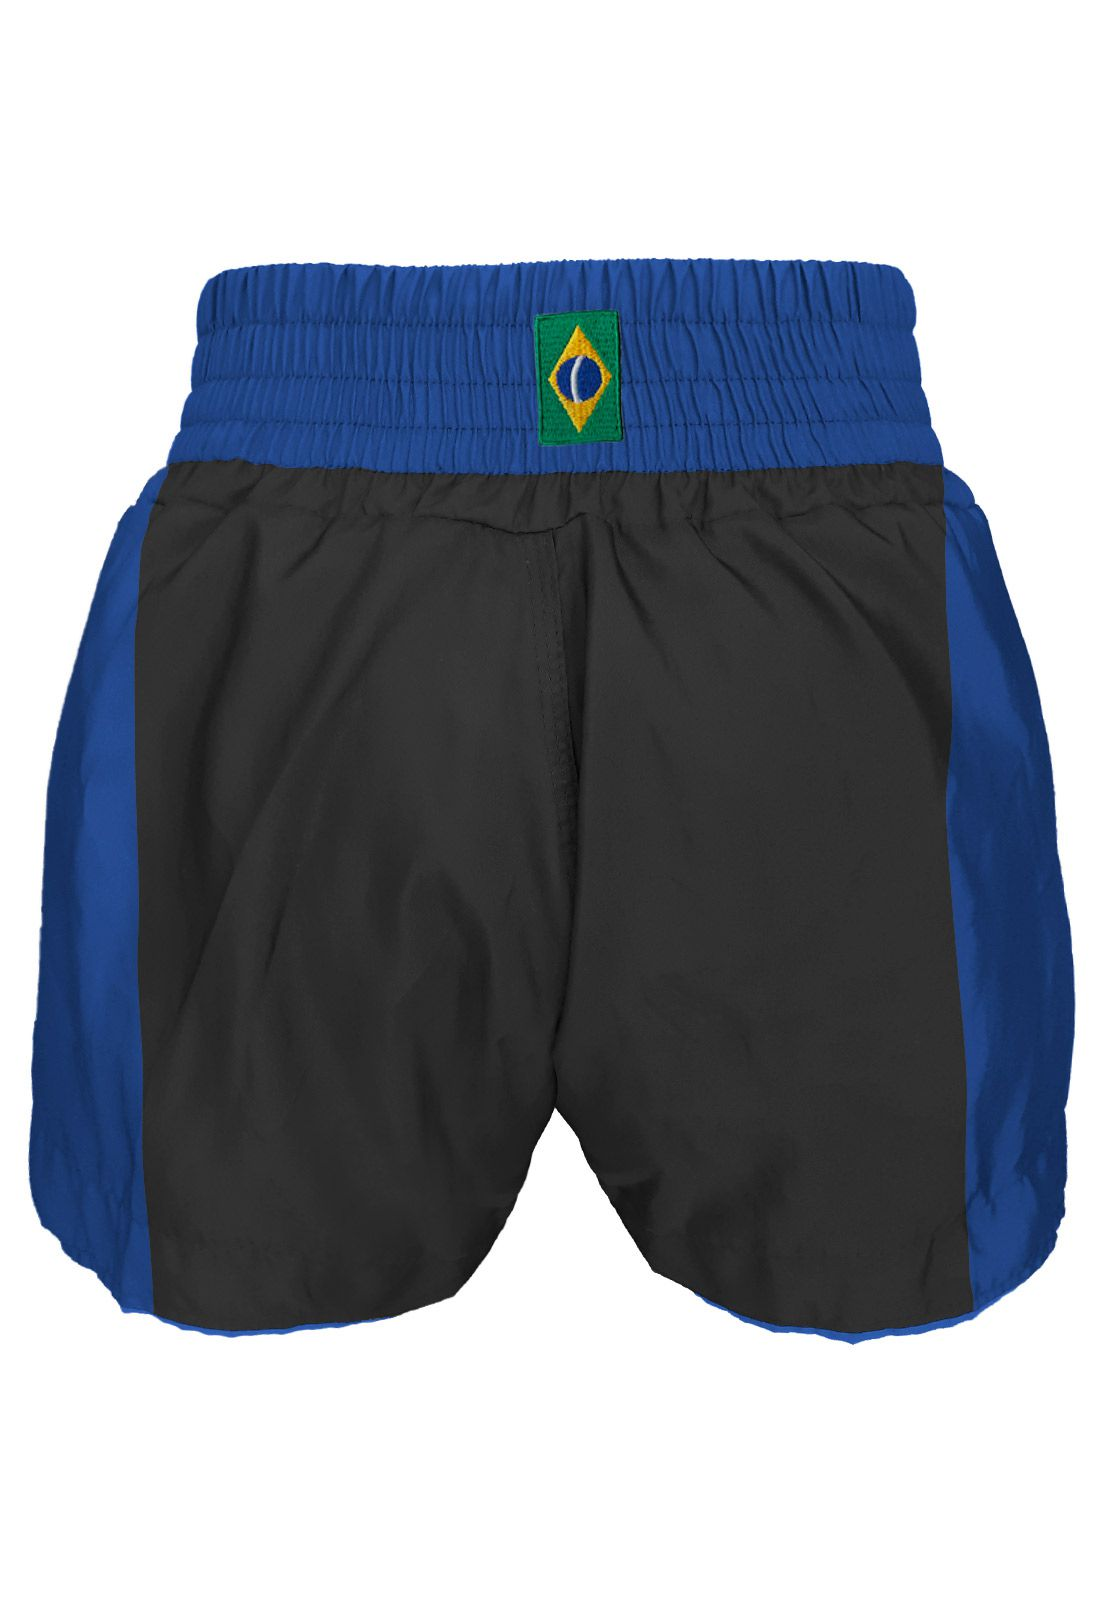 Short Muay Thai Traditional Premium - Pre/Azul